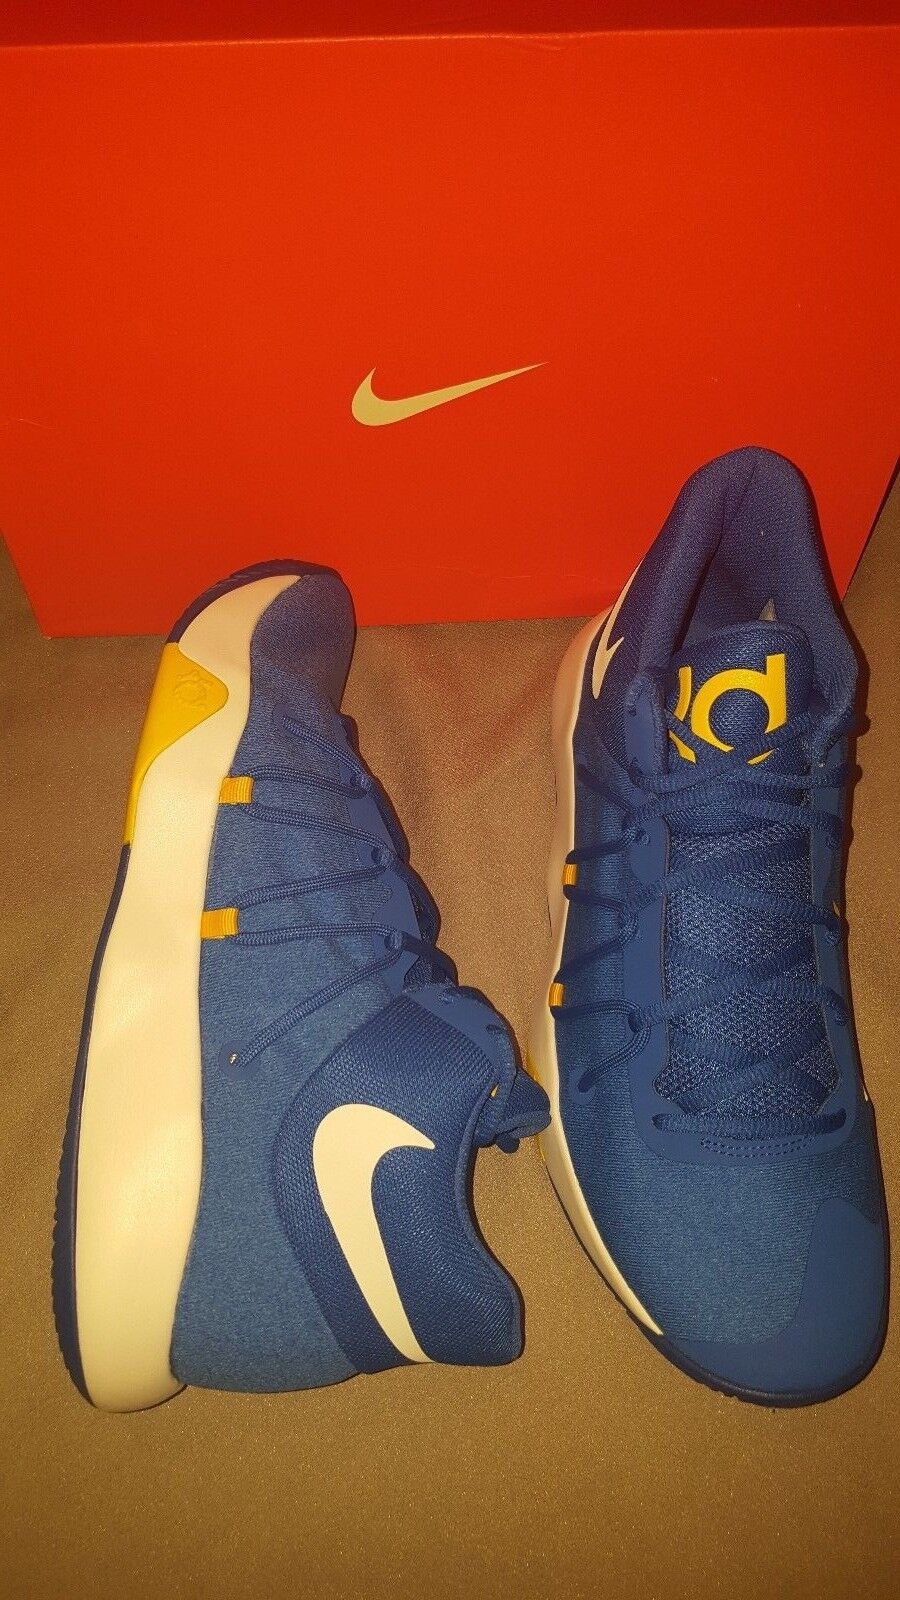 NIKE KD TREY 5 V Homme Chaussures ROYAL Bleu Blanc 897638 2018 US 10 NEW IN BOX